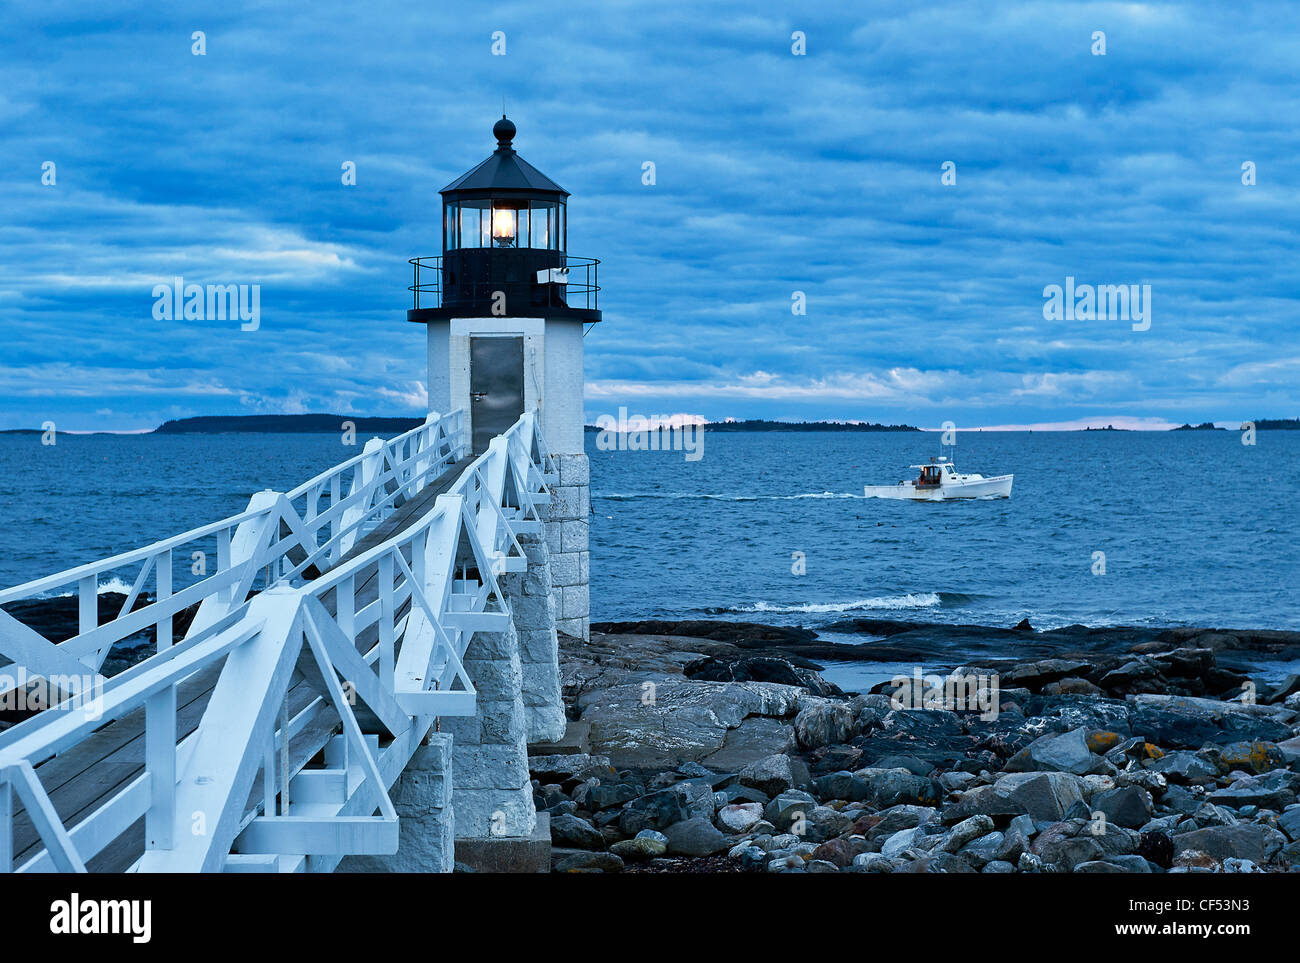 Marshall Point Light, Port Clyde, Maine, USA - Stock Image